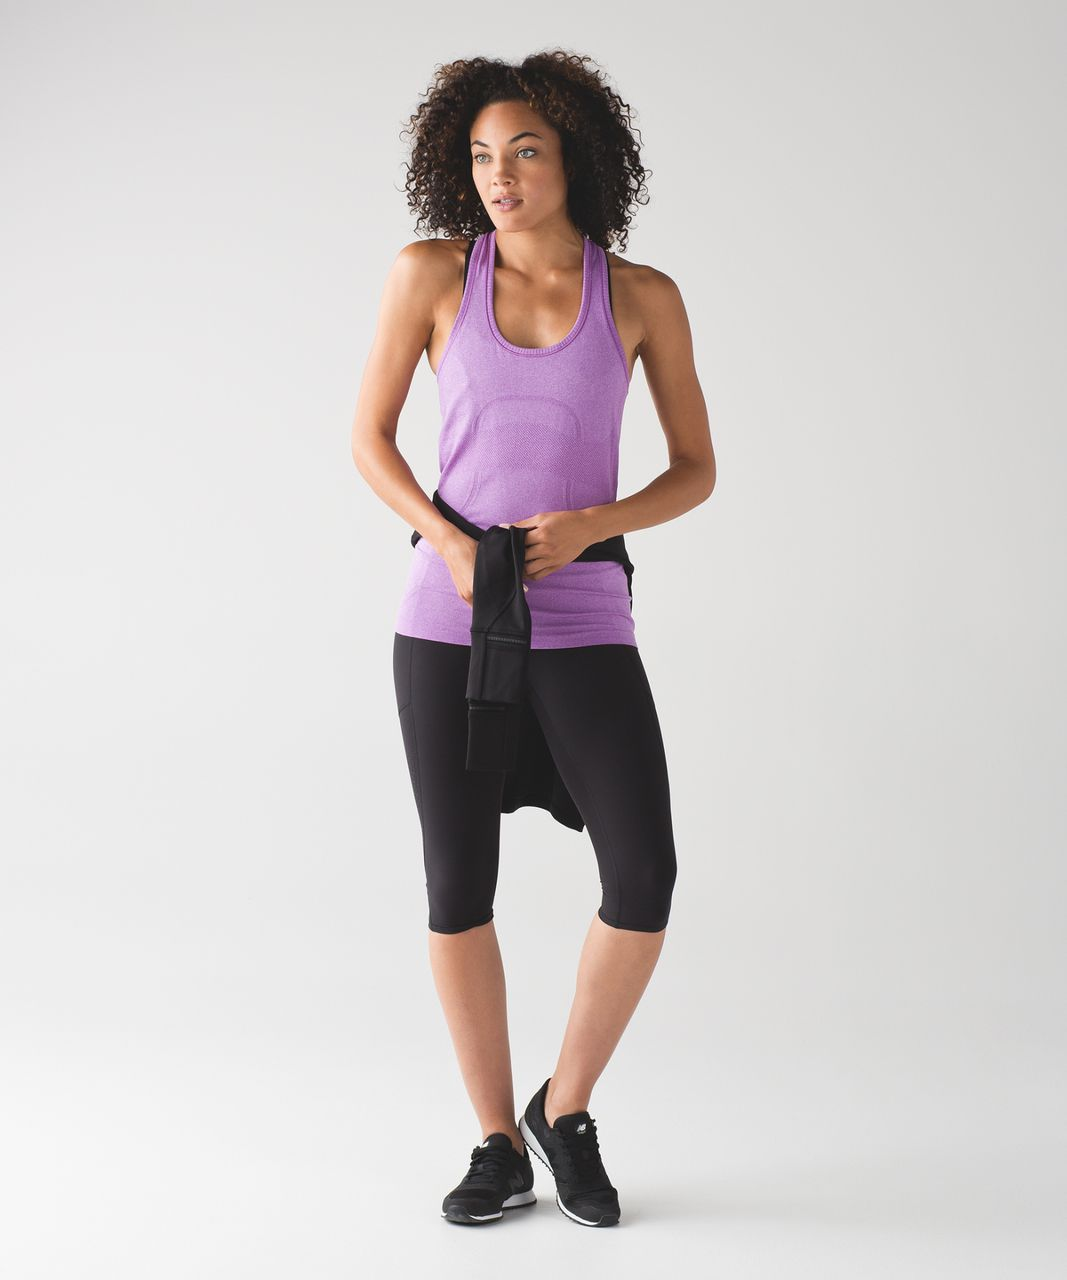 Lululemon Swiftly Tech Racerback - Heathered Moonlit Magenta